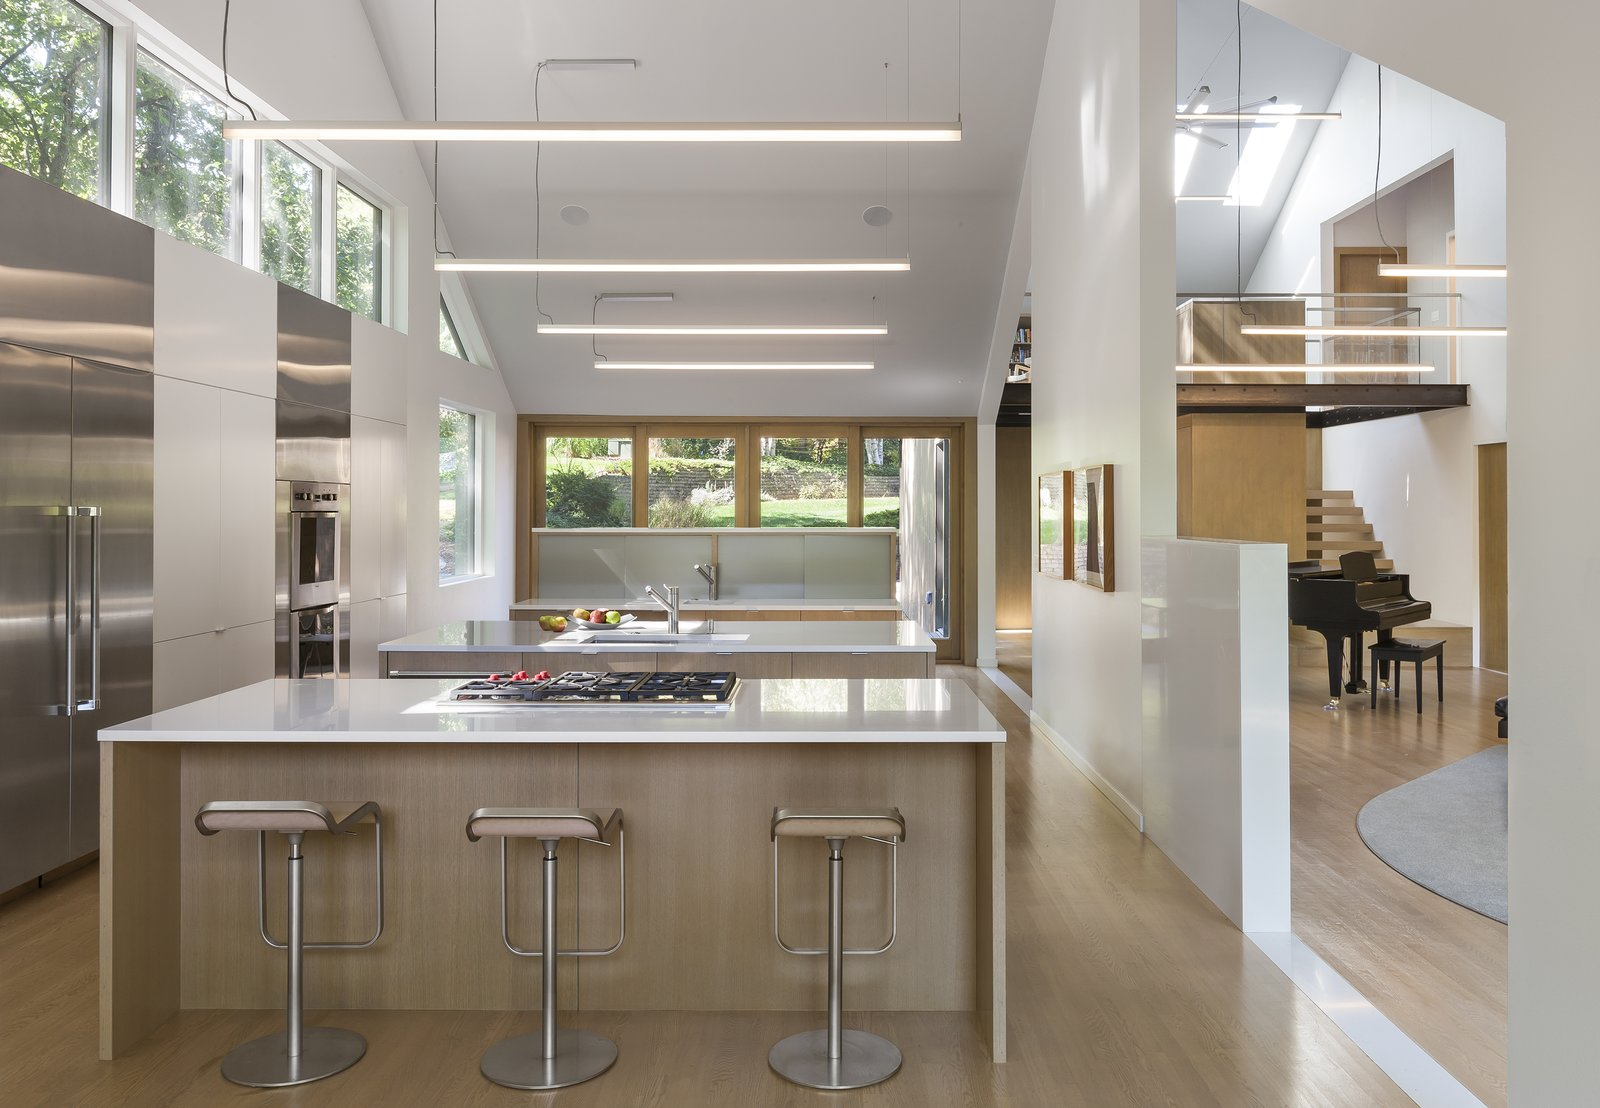 Kitchen, Light Hardwood Floor, White Cabinet, and Refrigerator  3LP Residence by Substance Architecture